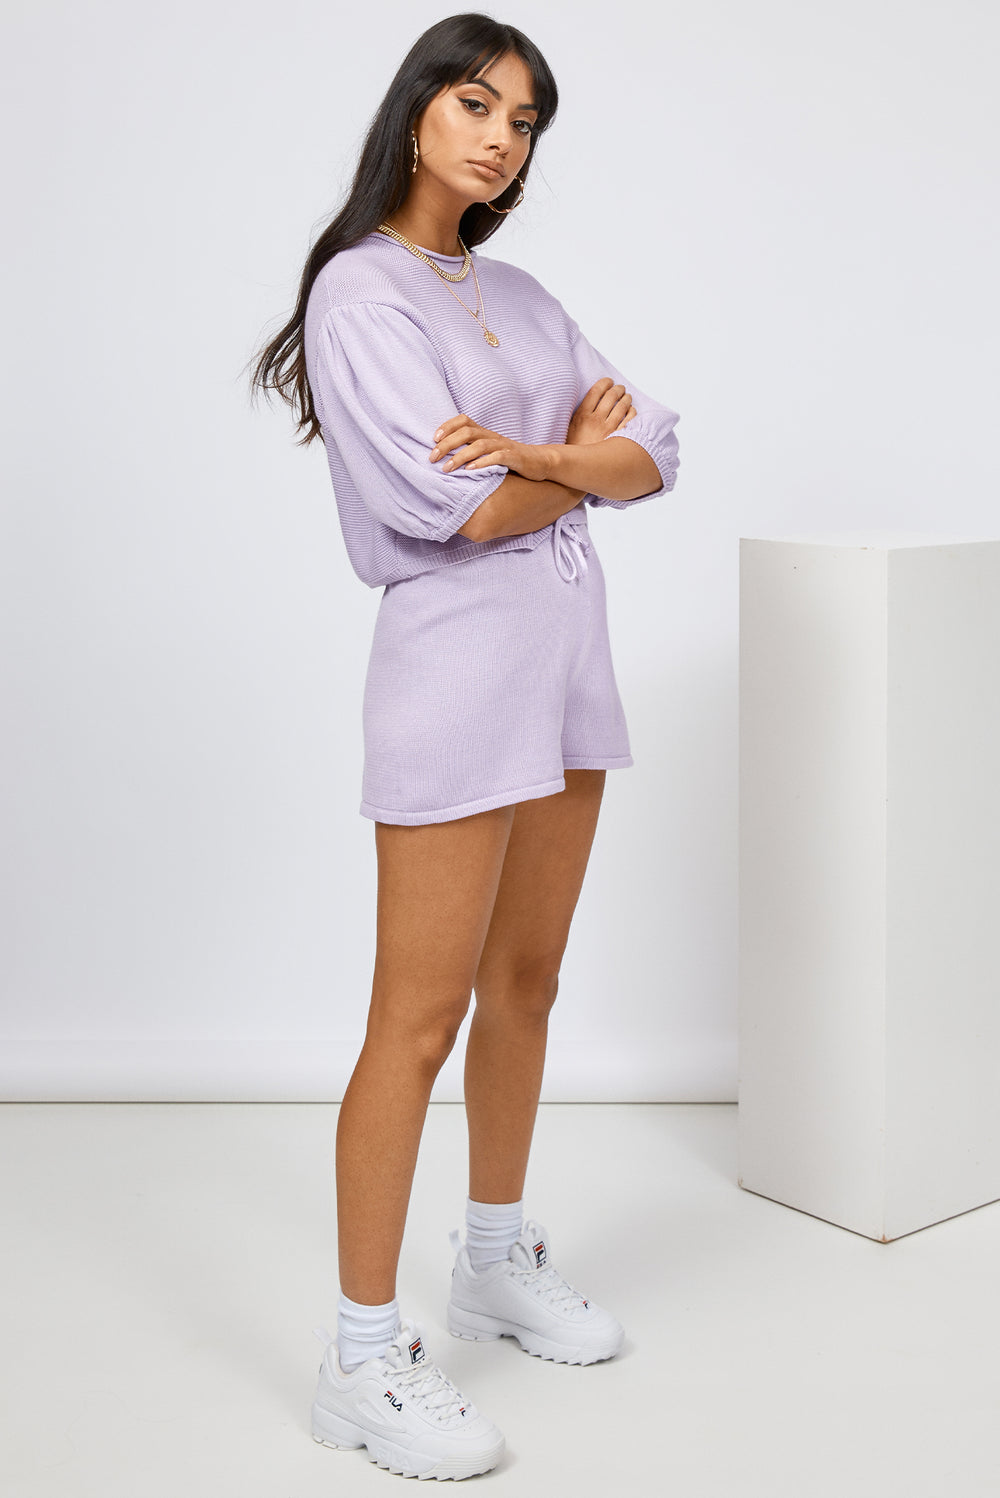 knit set, knit shorts, purple shorts